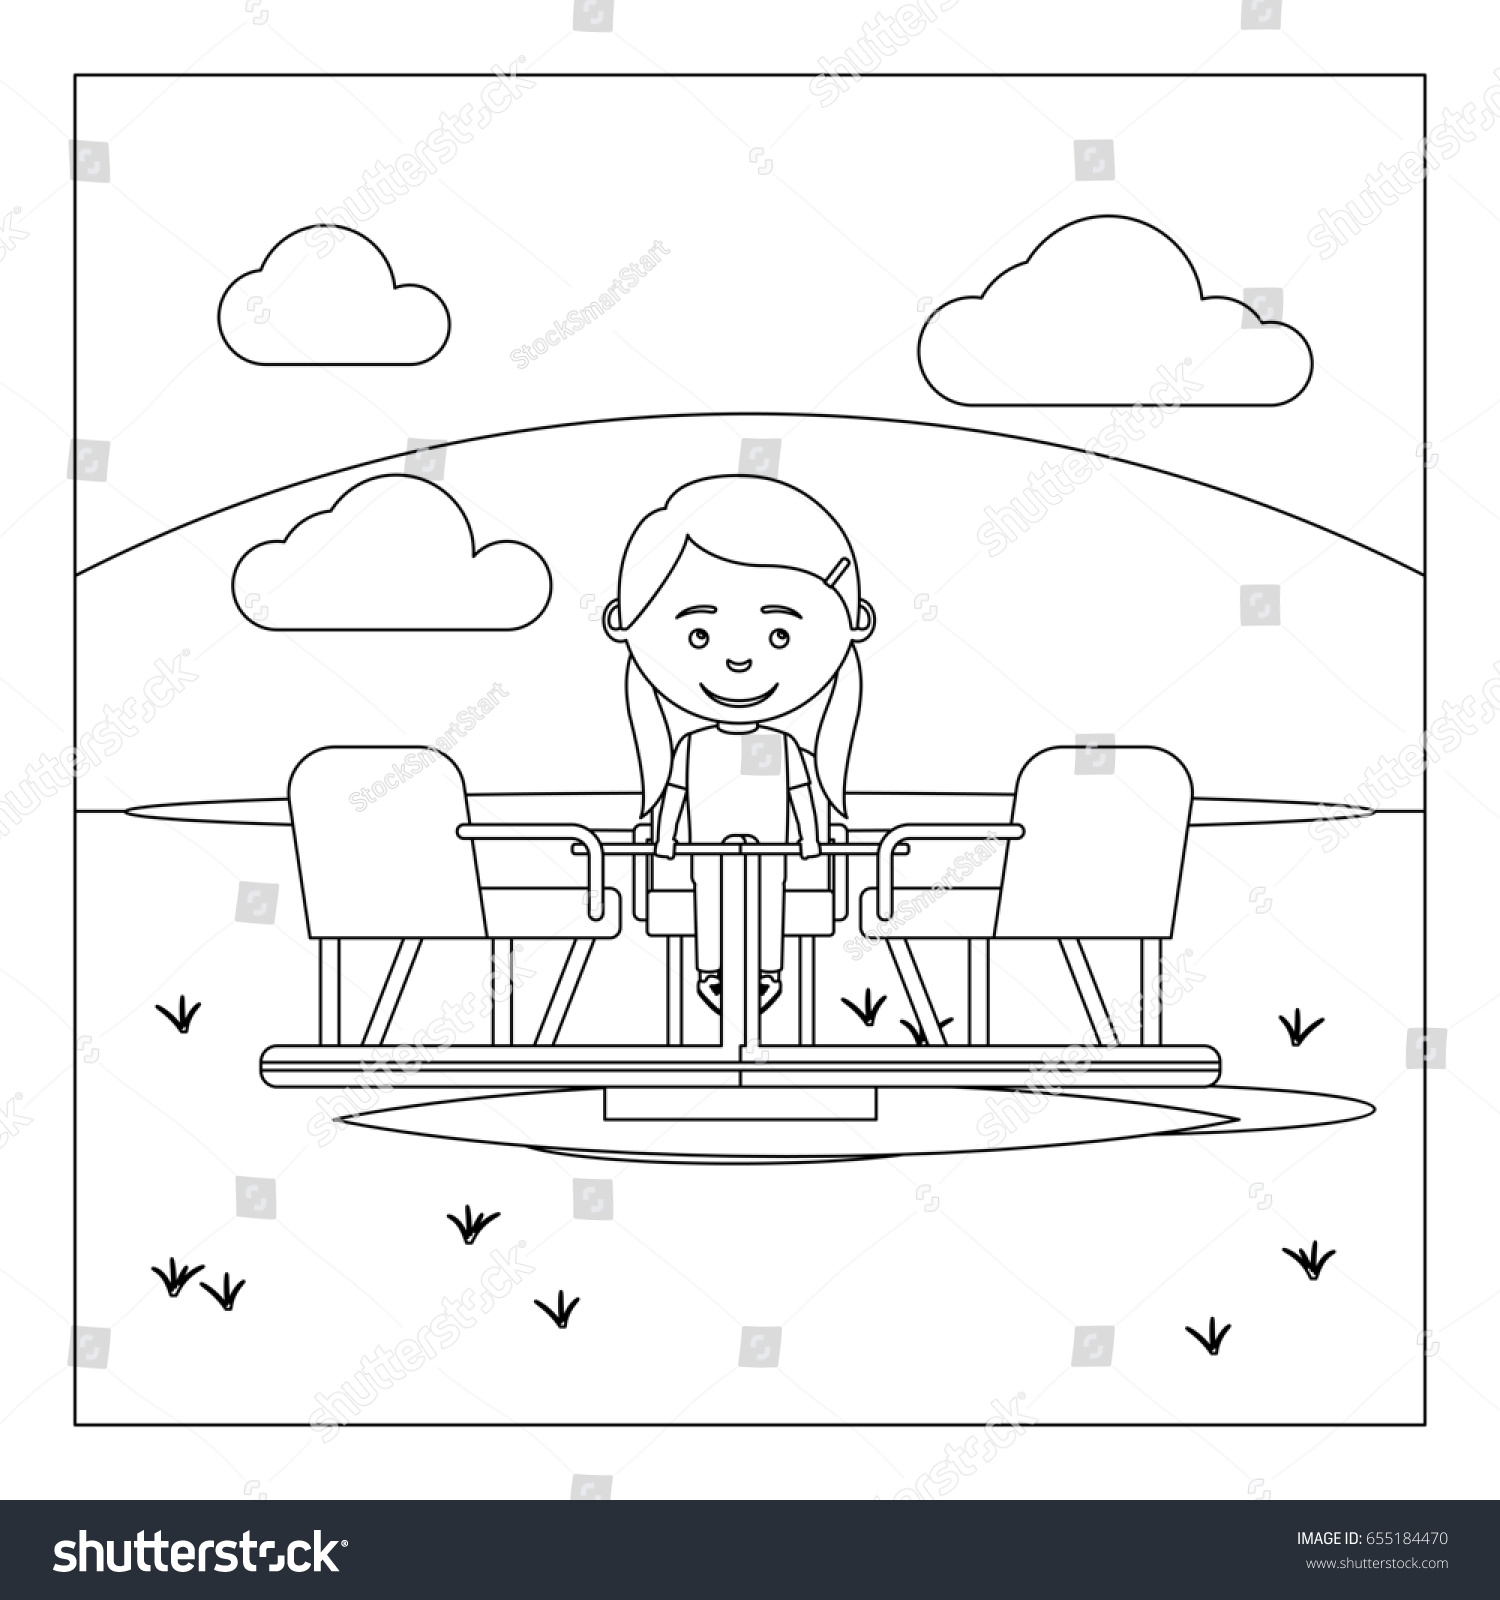 Coloring book page of a playground - Coloring Book Page Design With Kid On Playground Illustration